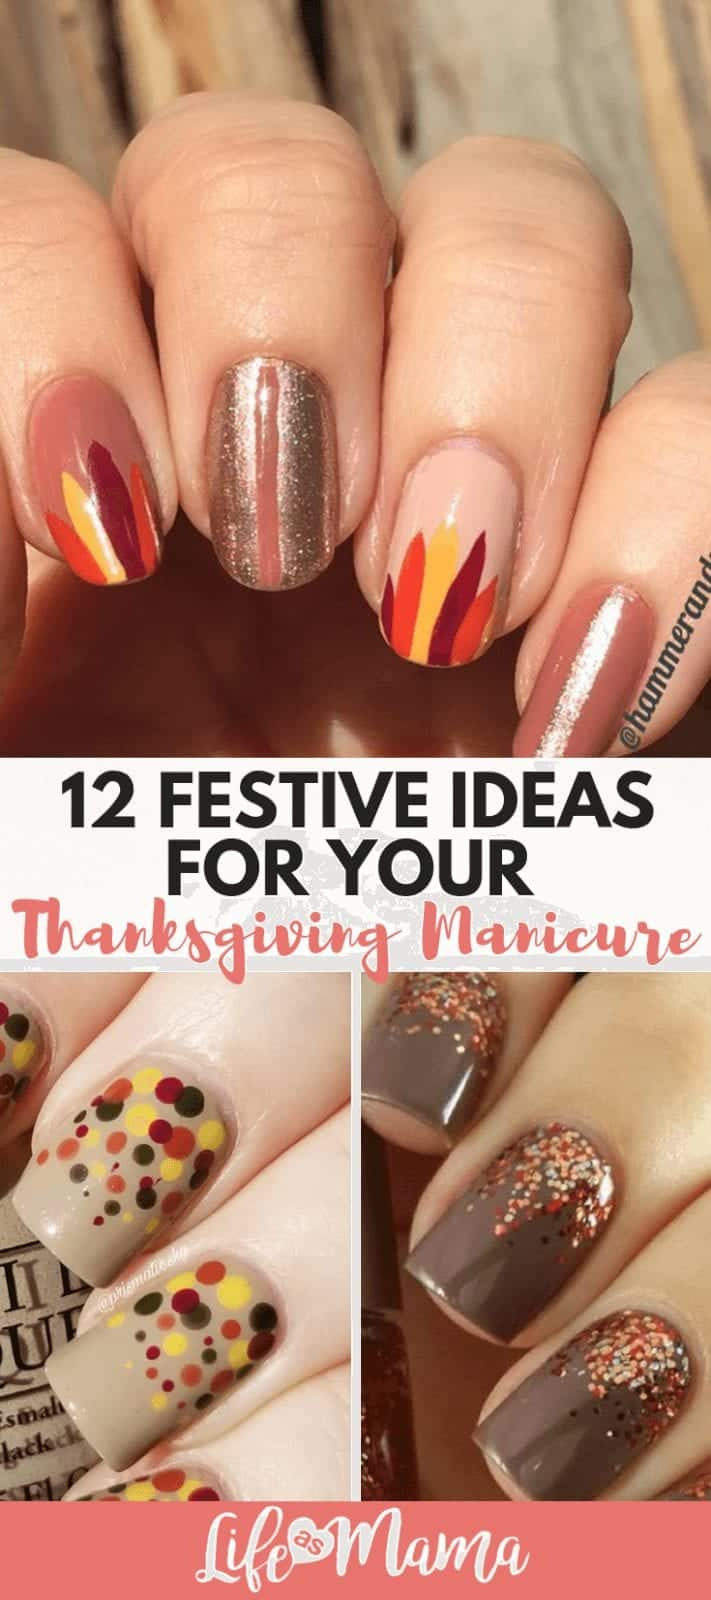 12 Festive Ideas For Your Thanksgiving Manicure